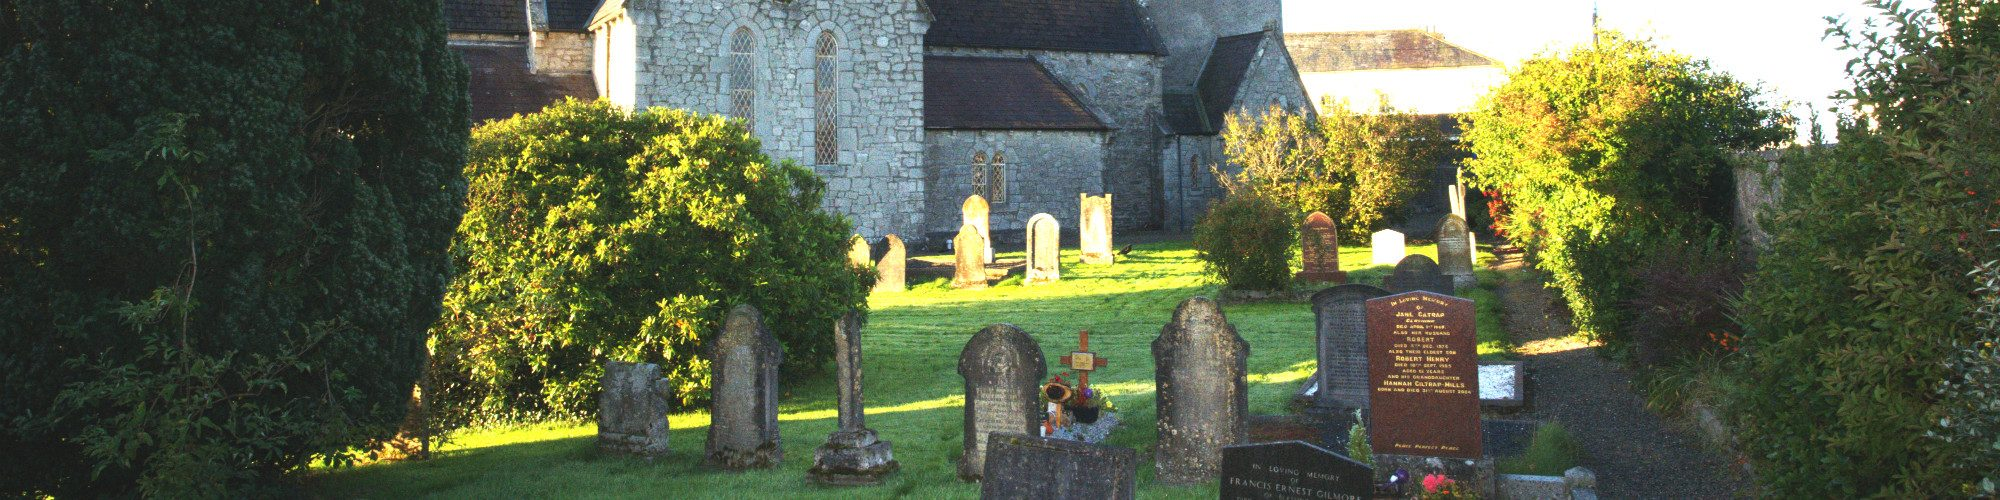 St Marys Churchyard on the Blessington Village Heritage Trail